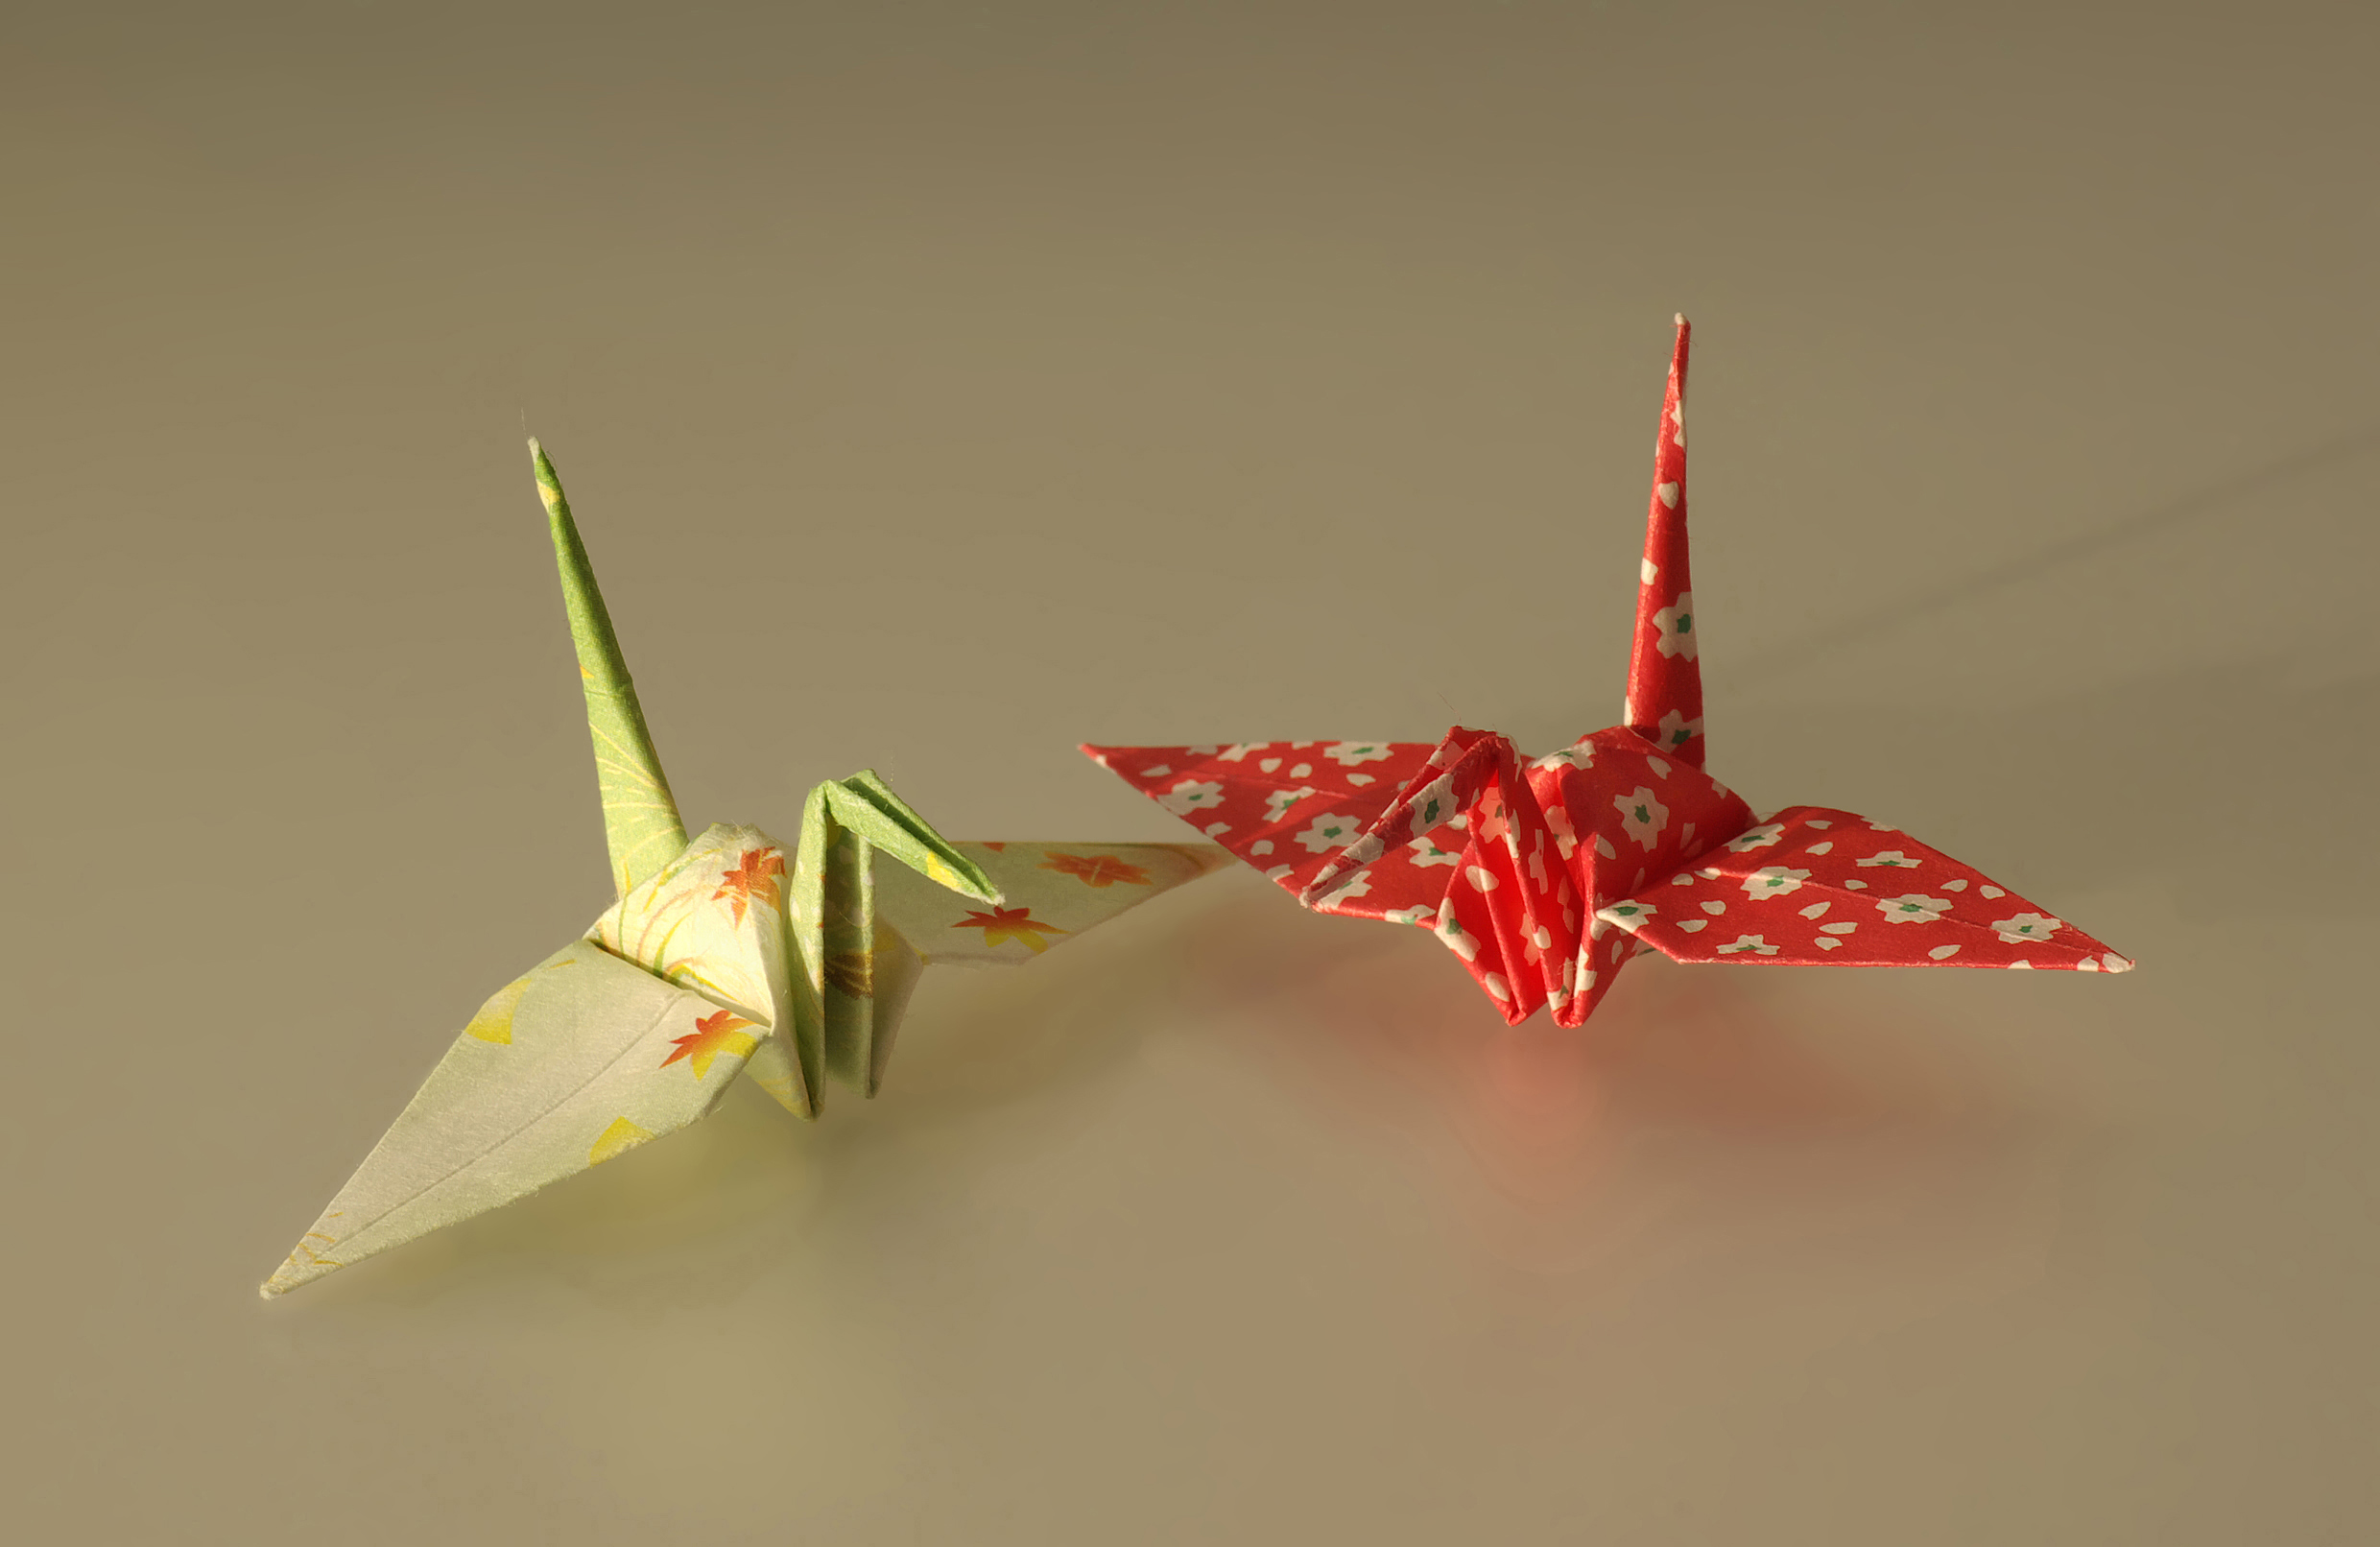 http://upload.wikimedia.org/wikipedia/commons/e/e1/Origami_cranes.jpg